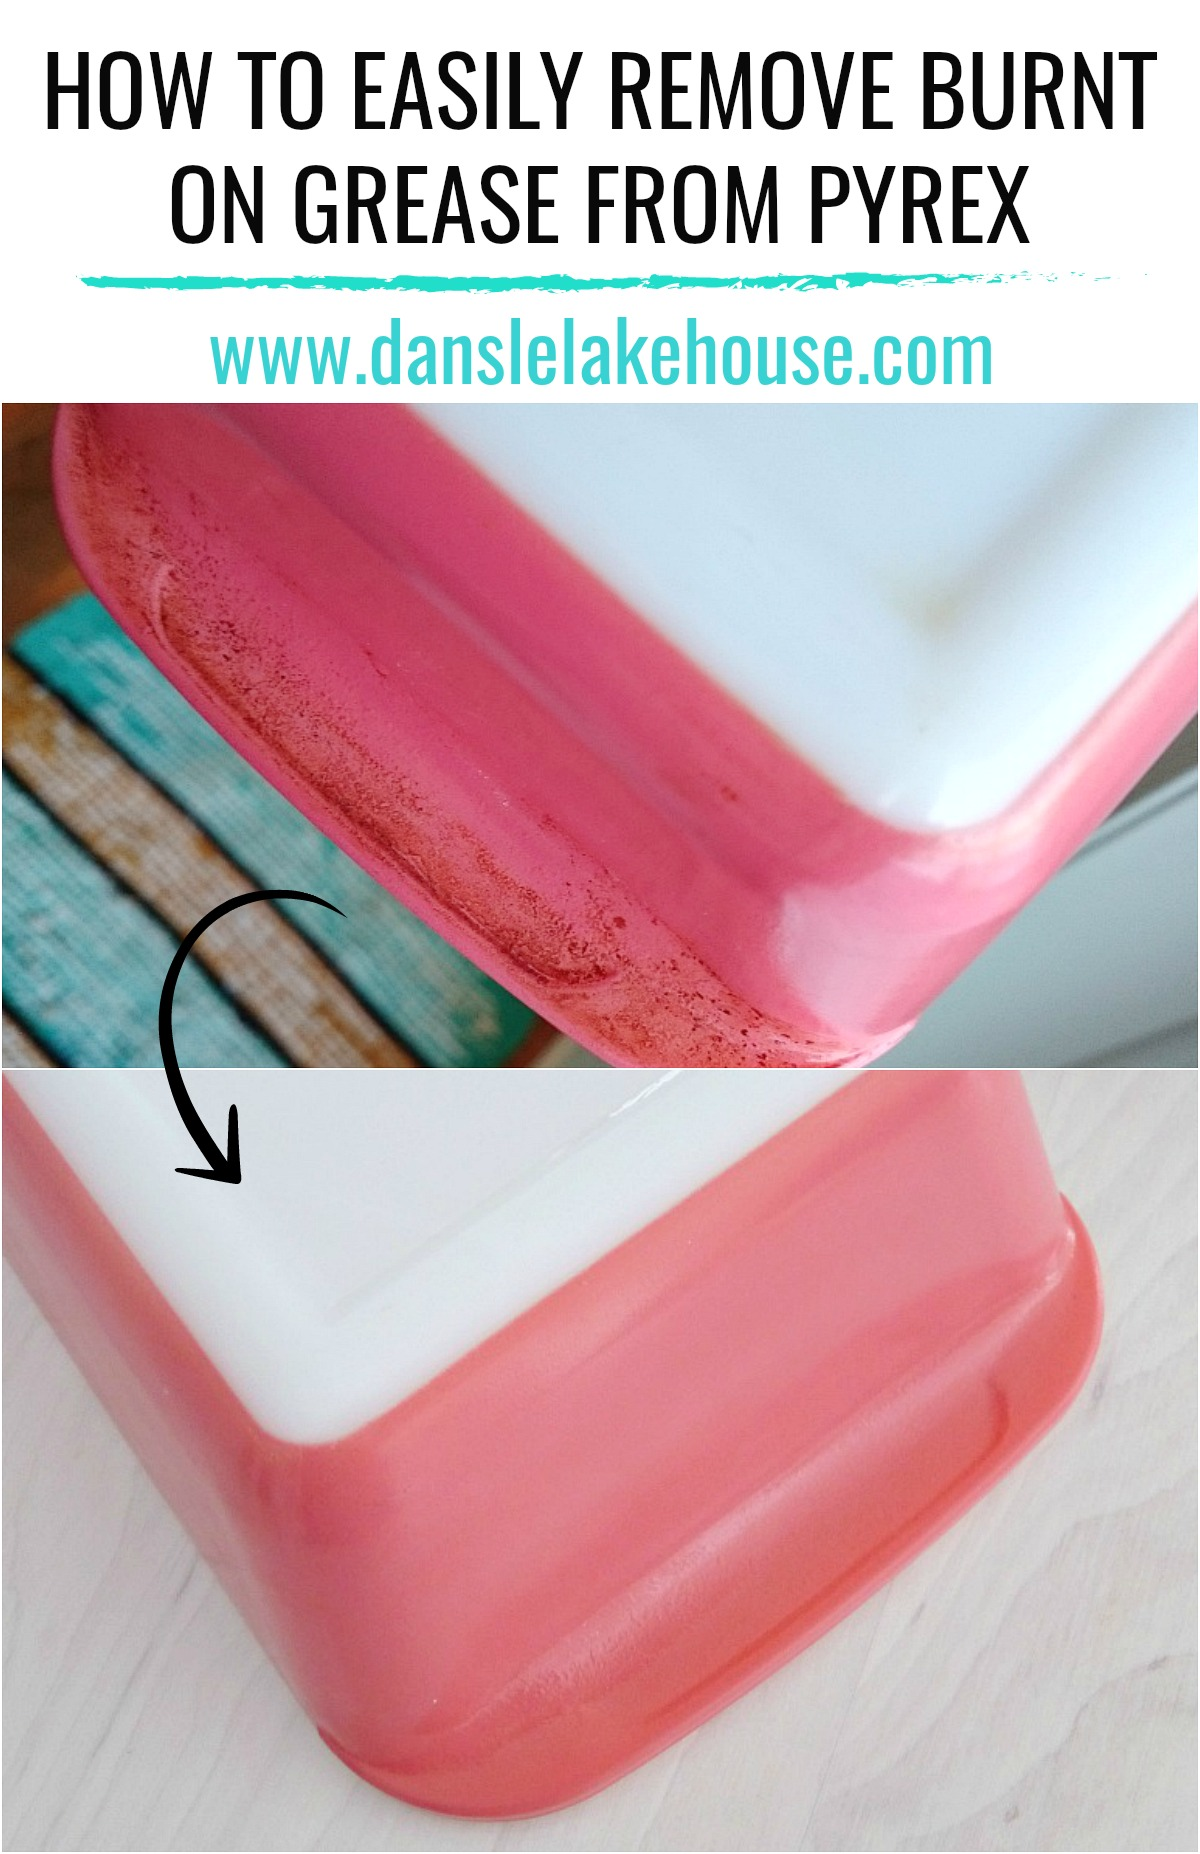 How to Clean Burnt on Grease from Pyrex. GREAT Pyrex Cleaning Tip - no scrubbing required. Plus Learn a Little History about Canadian Made Vintage Pyrex #cleaningpyrex #vintagepyrex #pinkpyrex